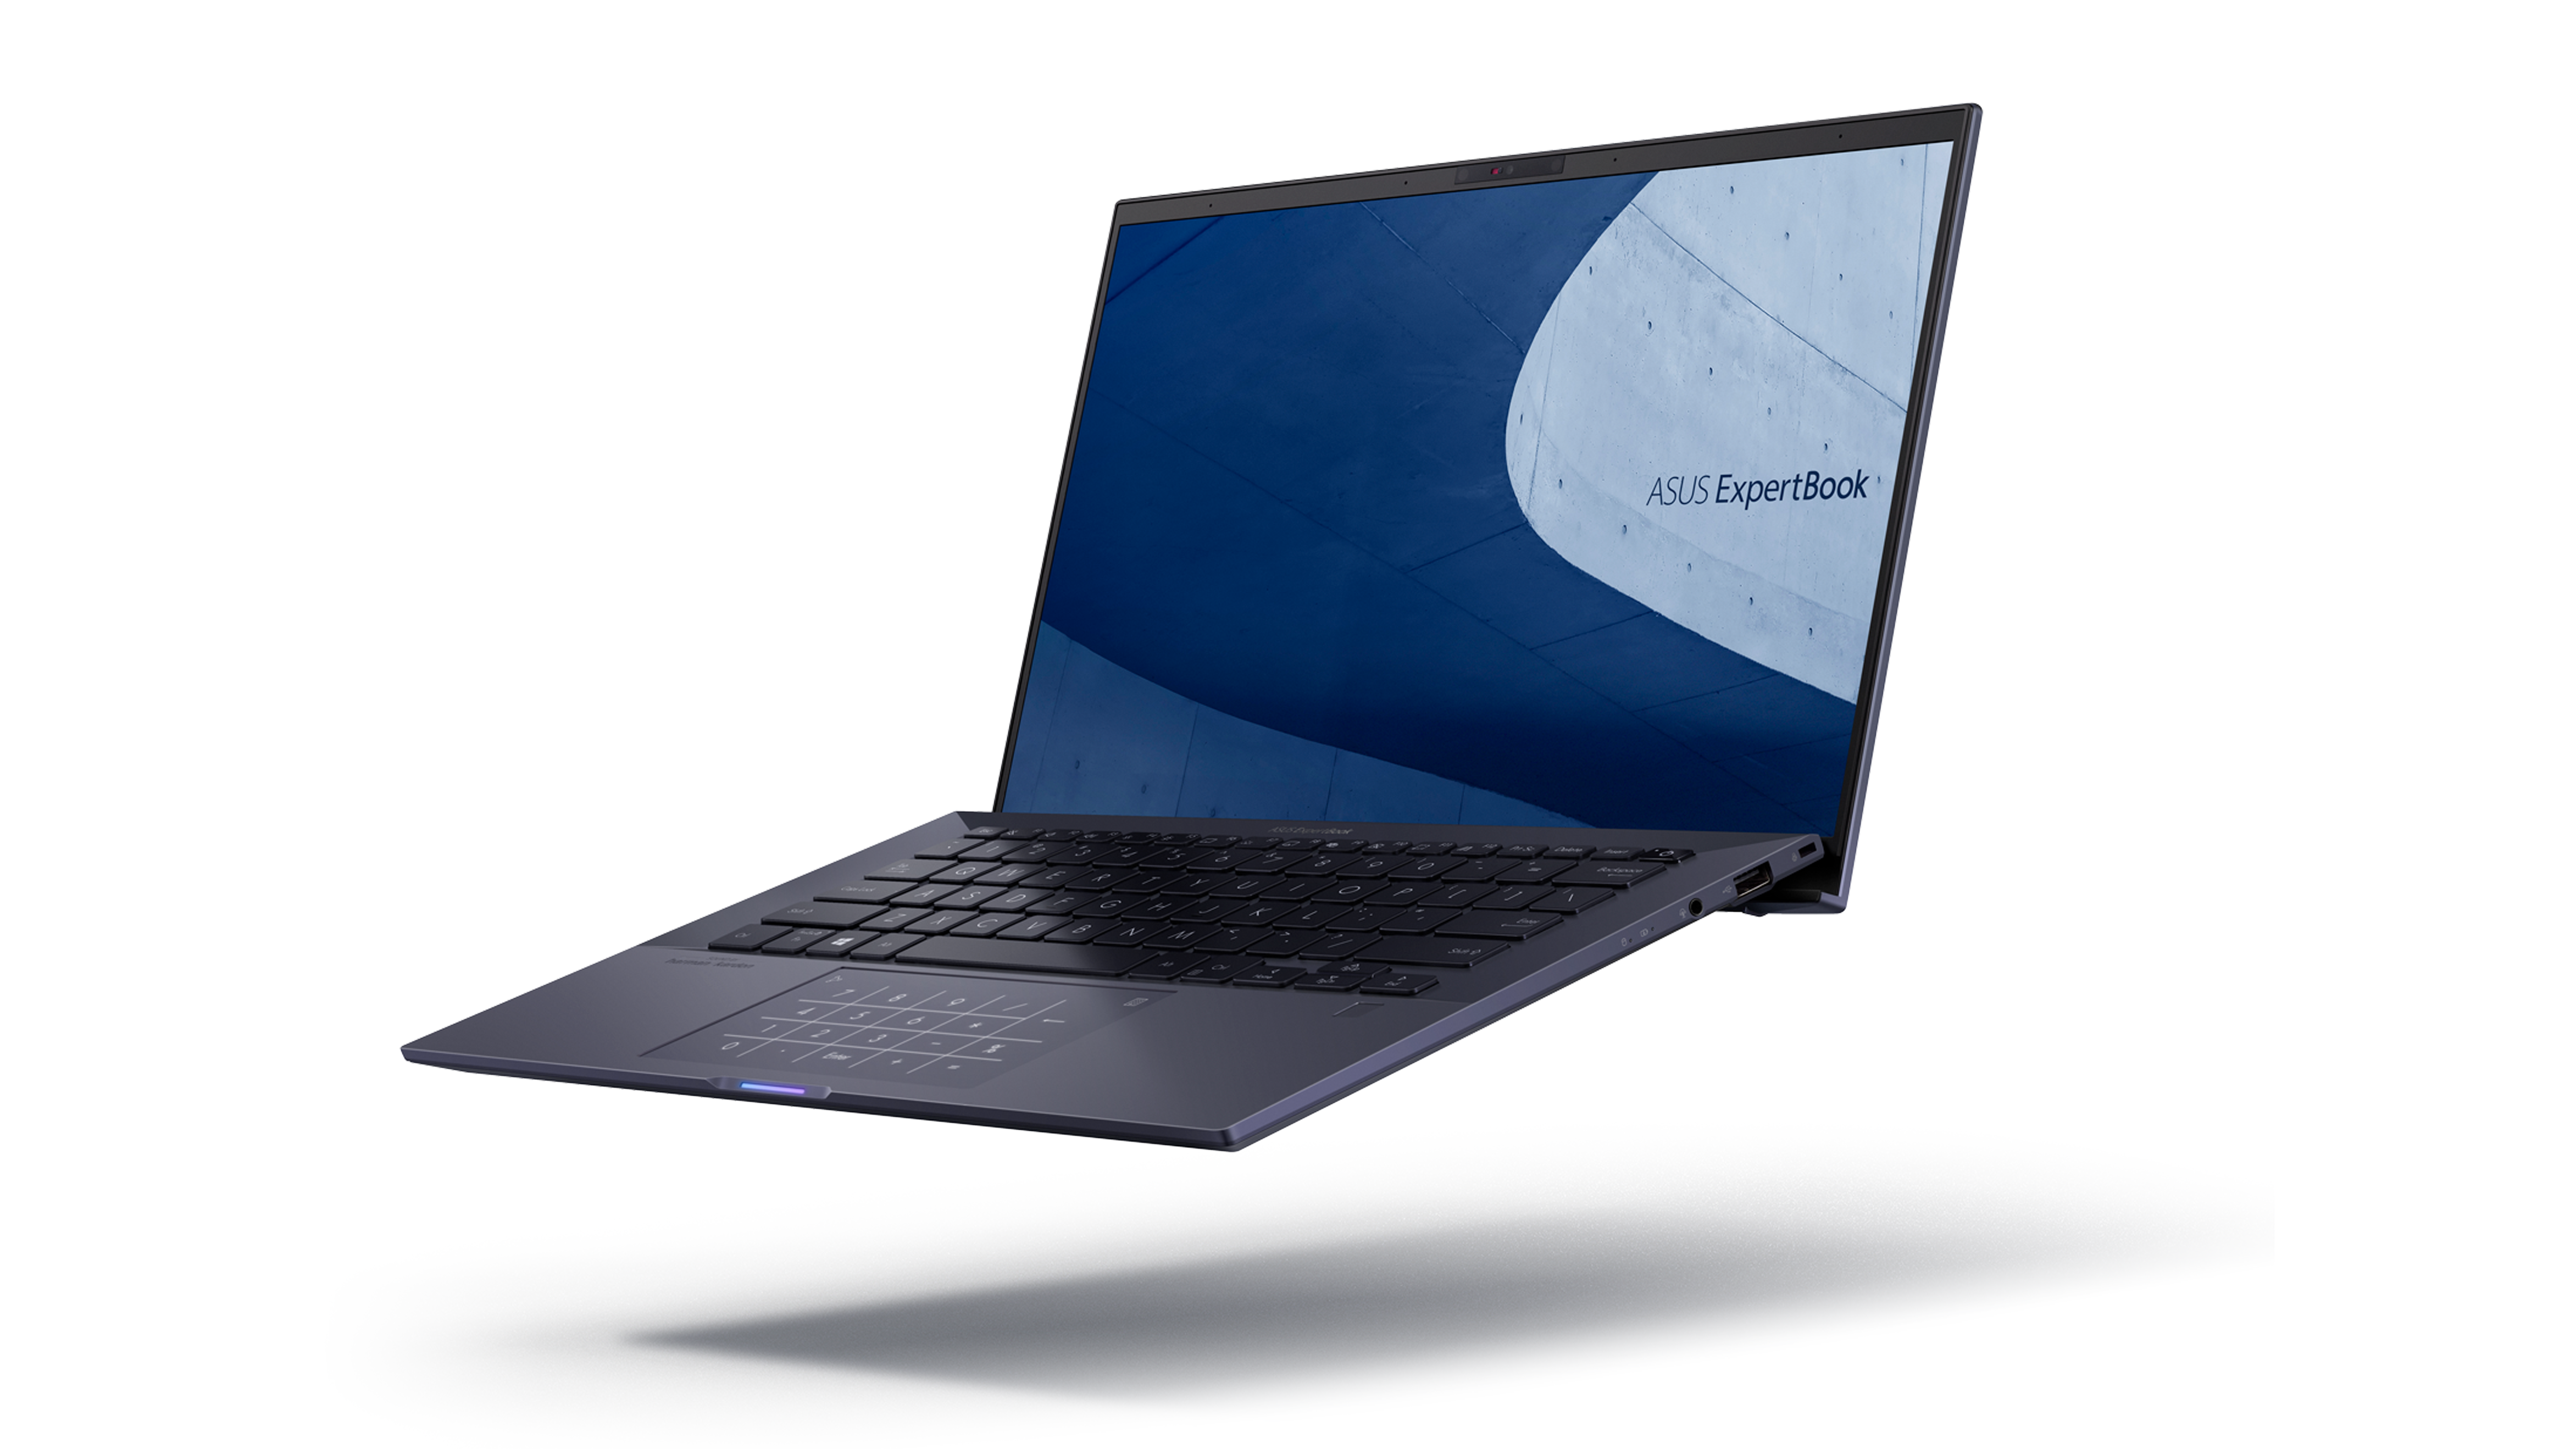 expertbook-b9450-up-to-24-hour-battery-life.png